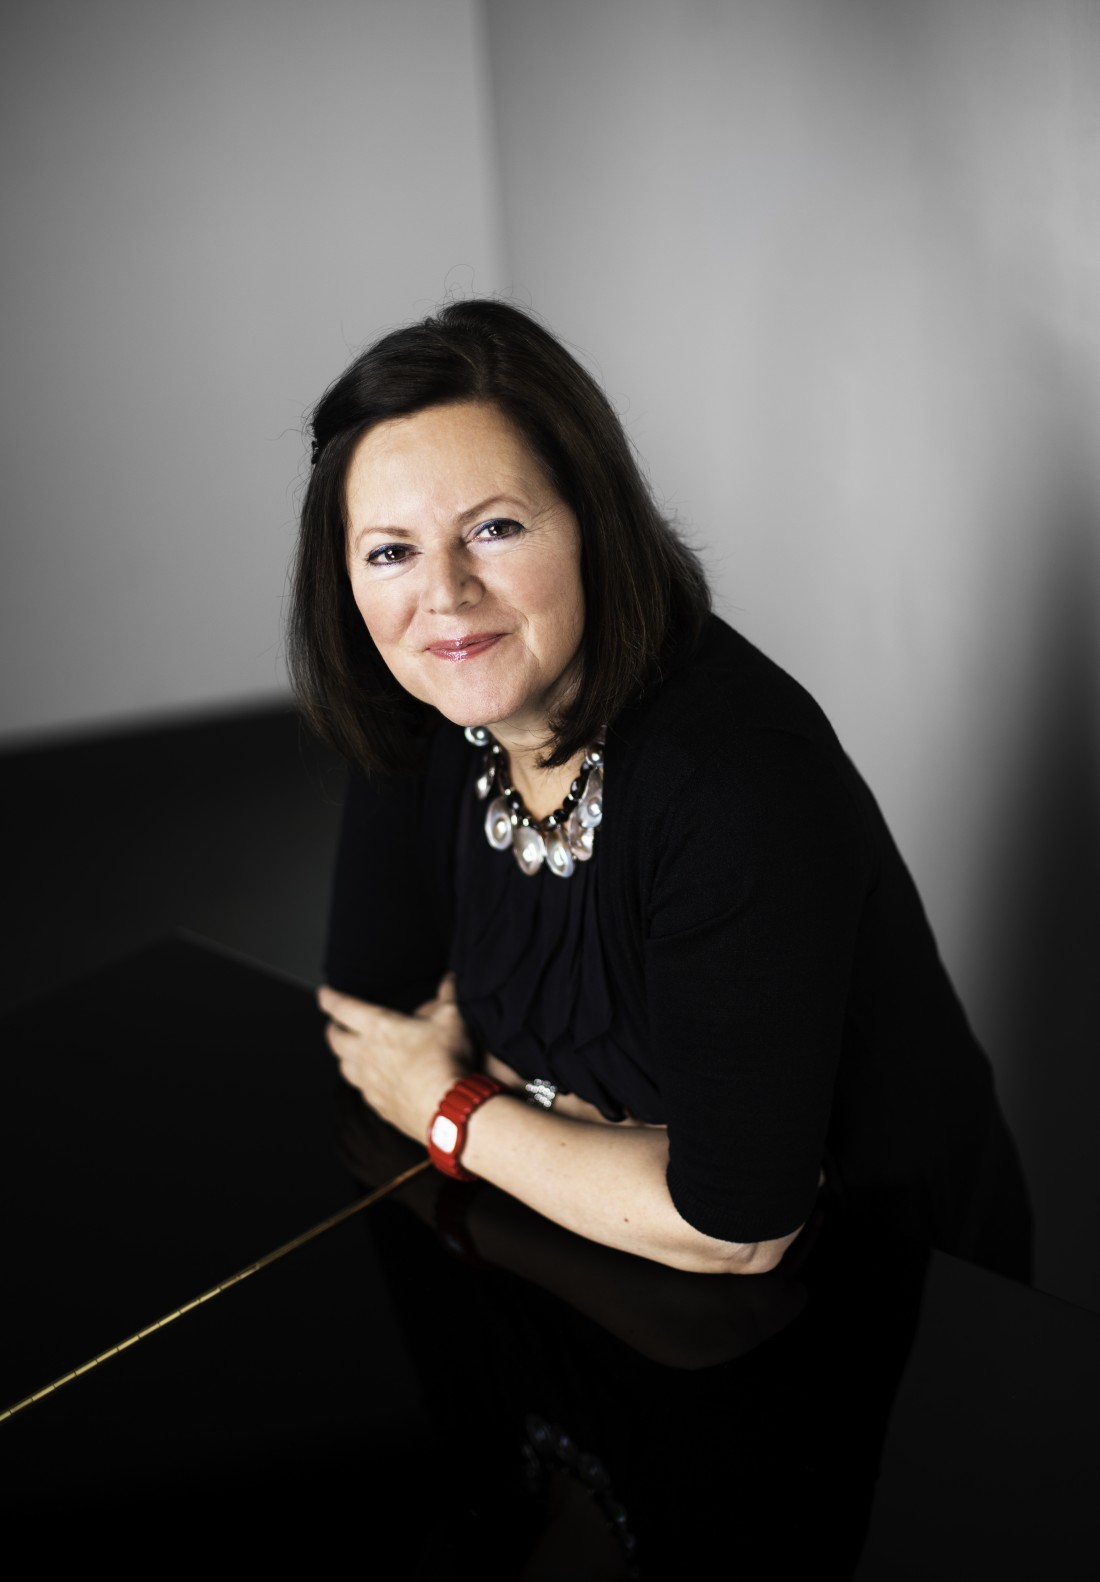 Pianist Kathryn Stott is our Season Finale to our 15/16 concert season here at Lancaster Arts at Lancaster University. 17 March 2016.